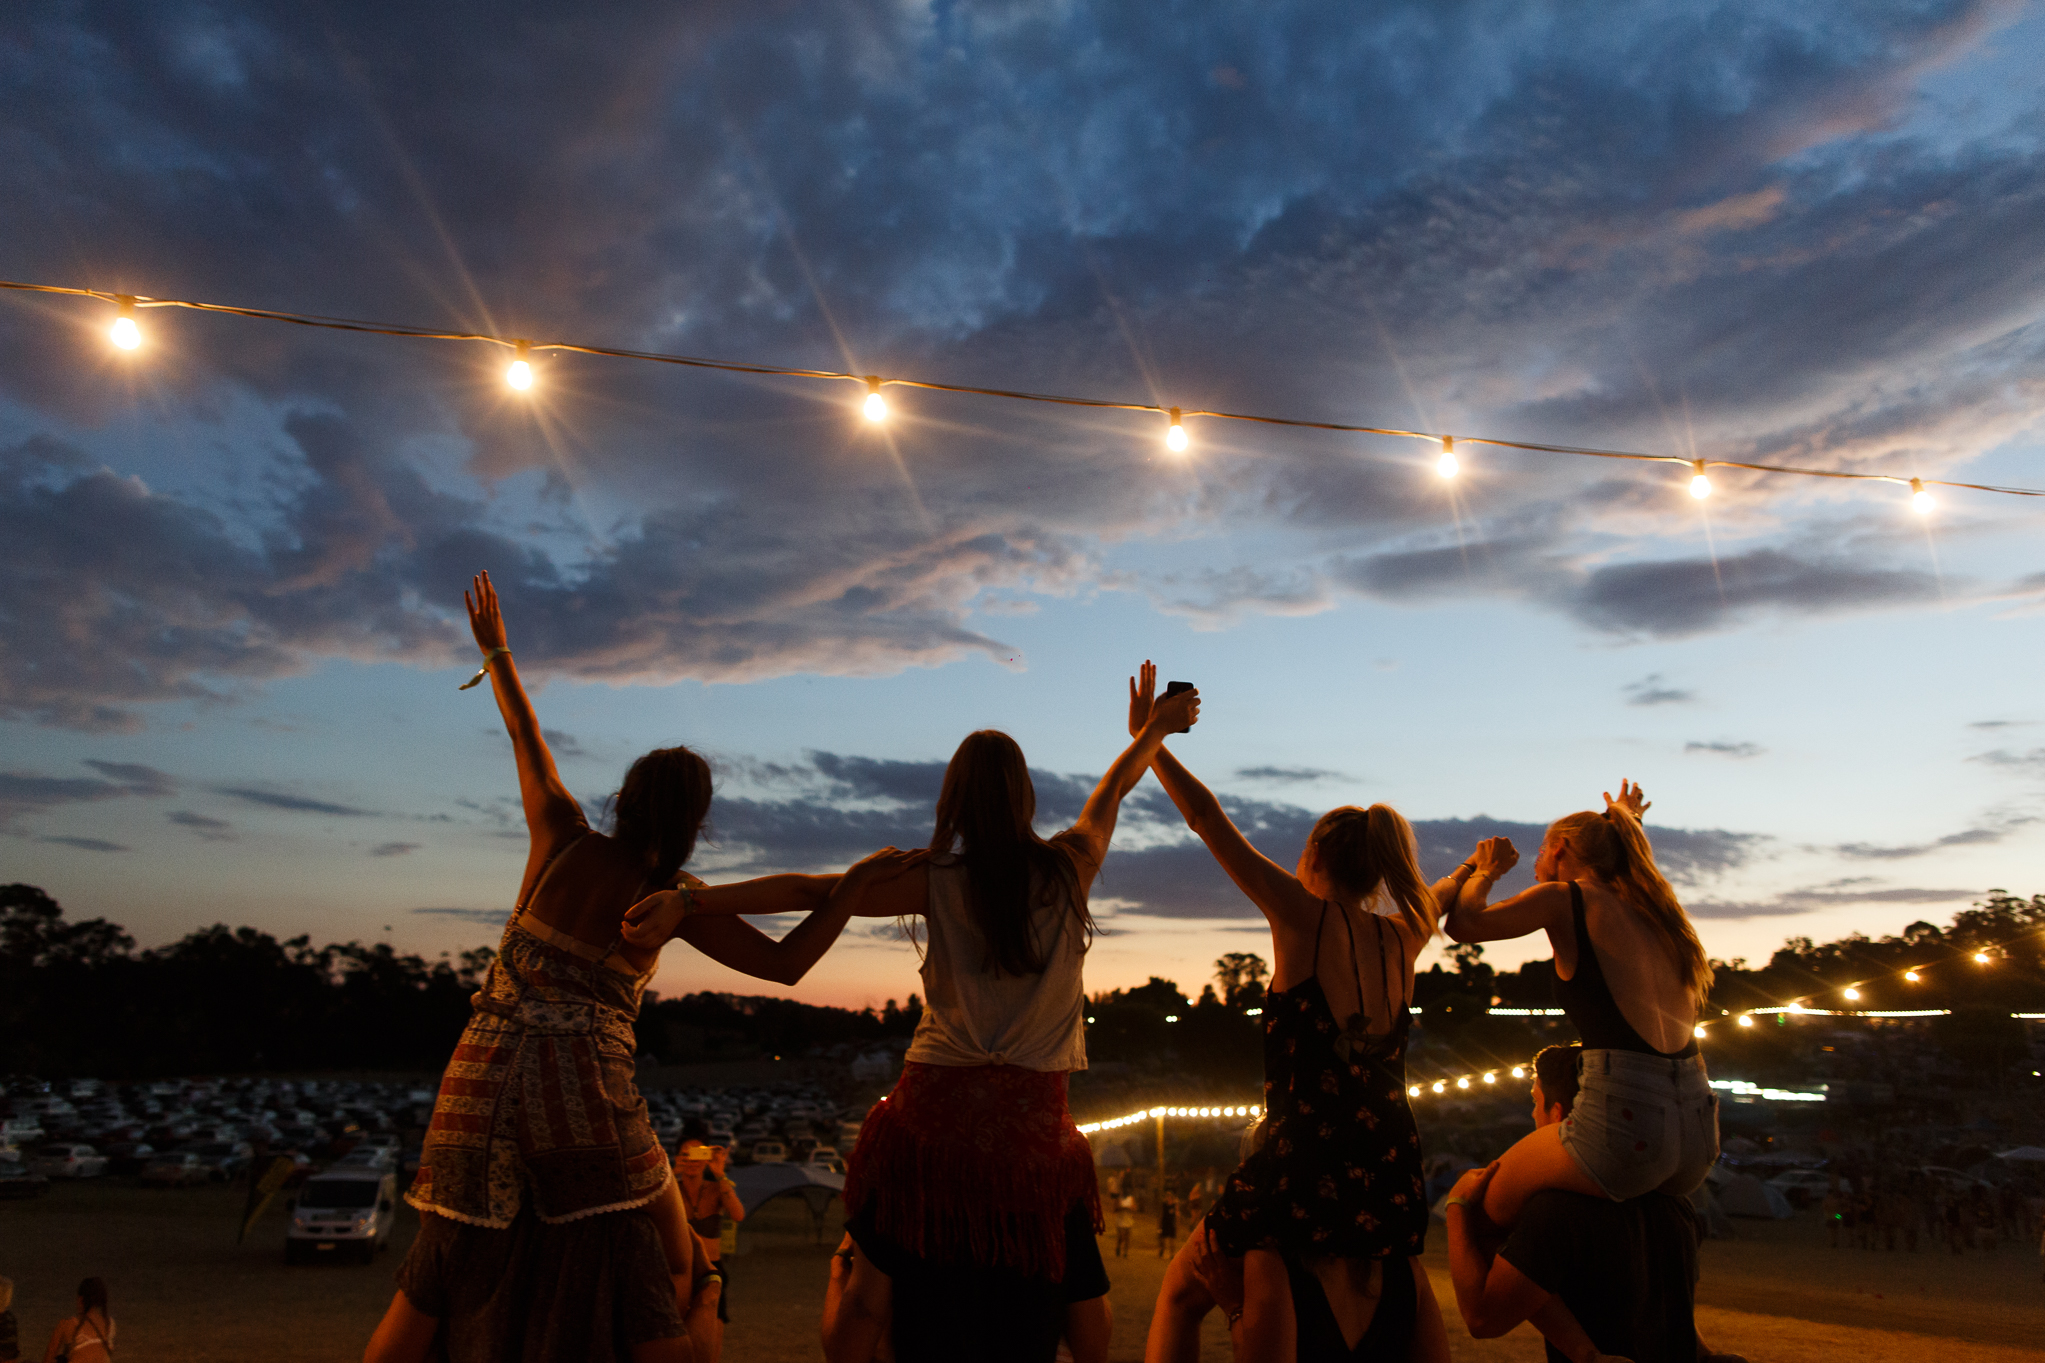 Four girls piggy back dancing with arms in the air at Beyond the Valley Festival, Australia